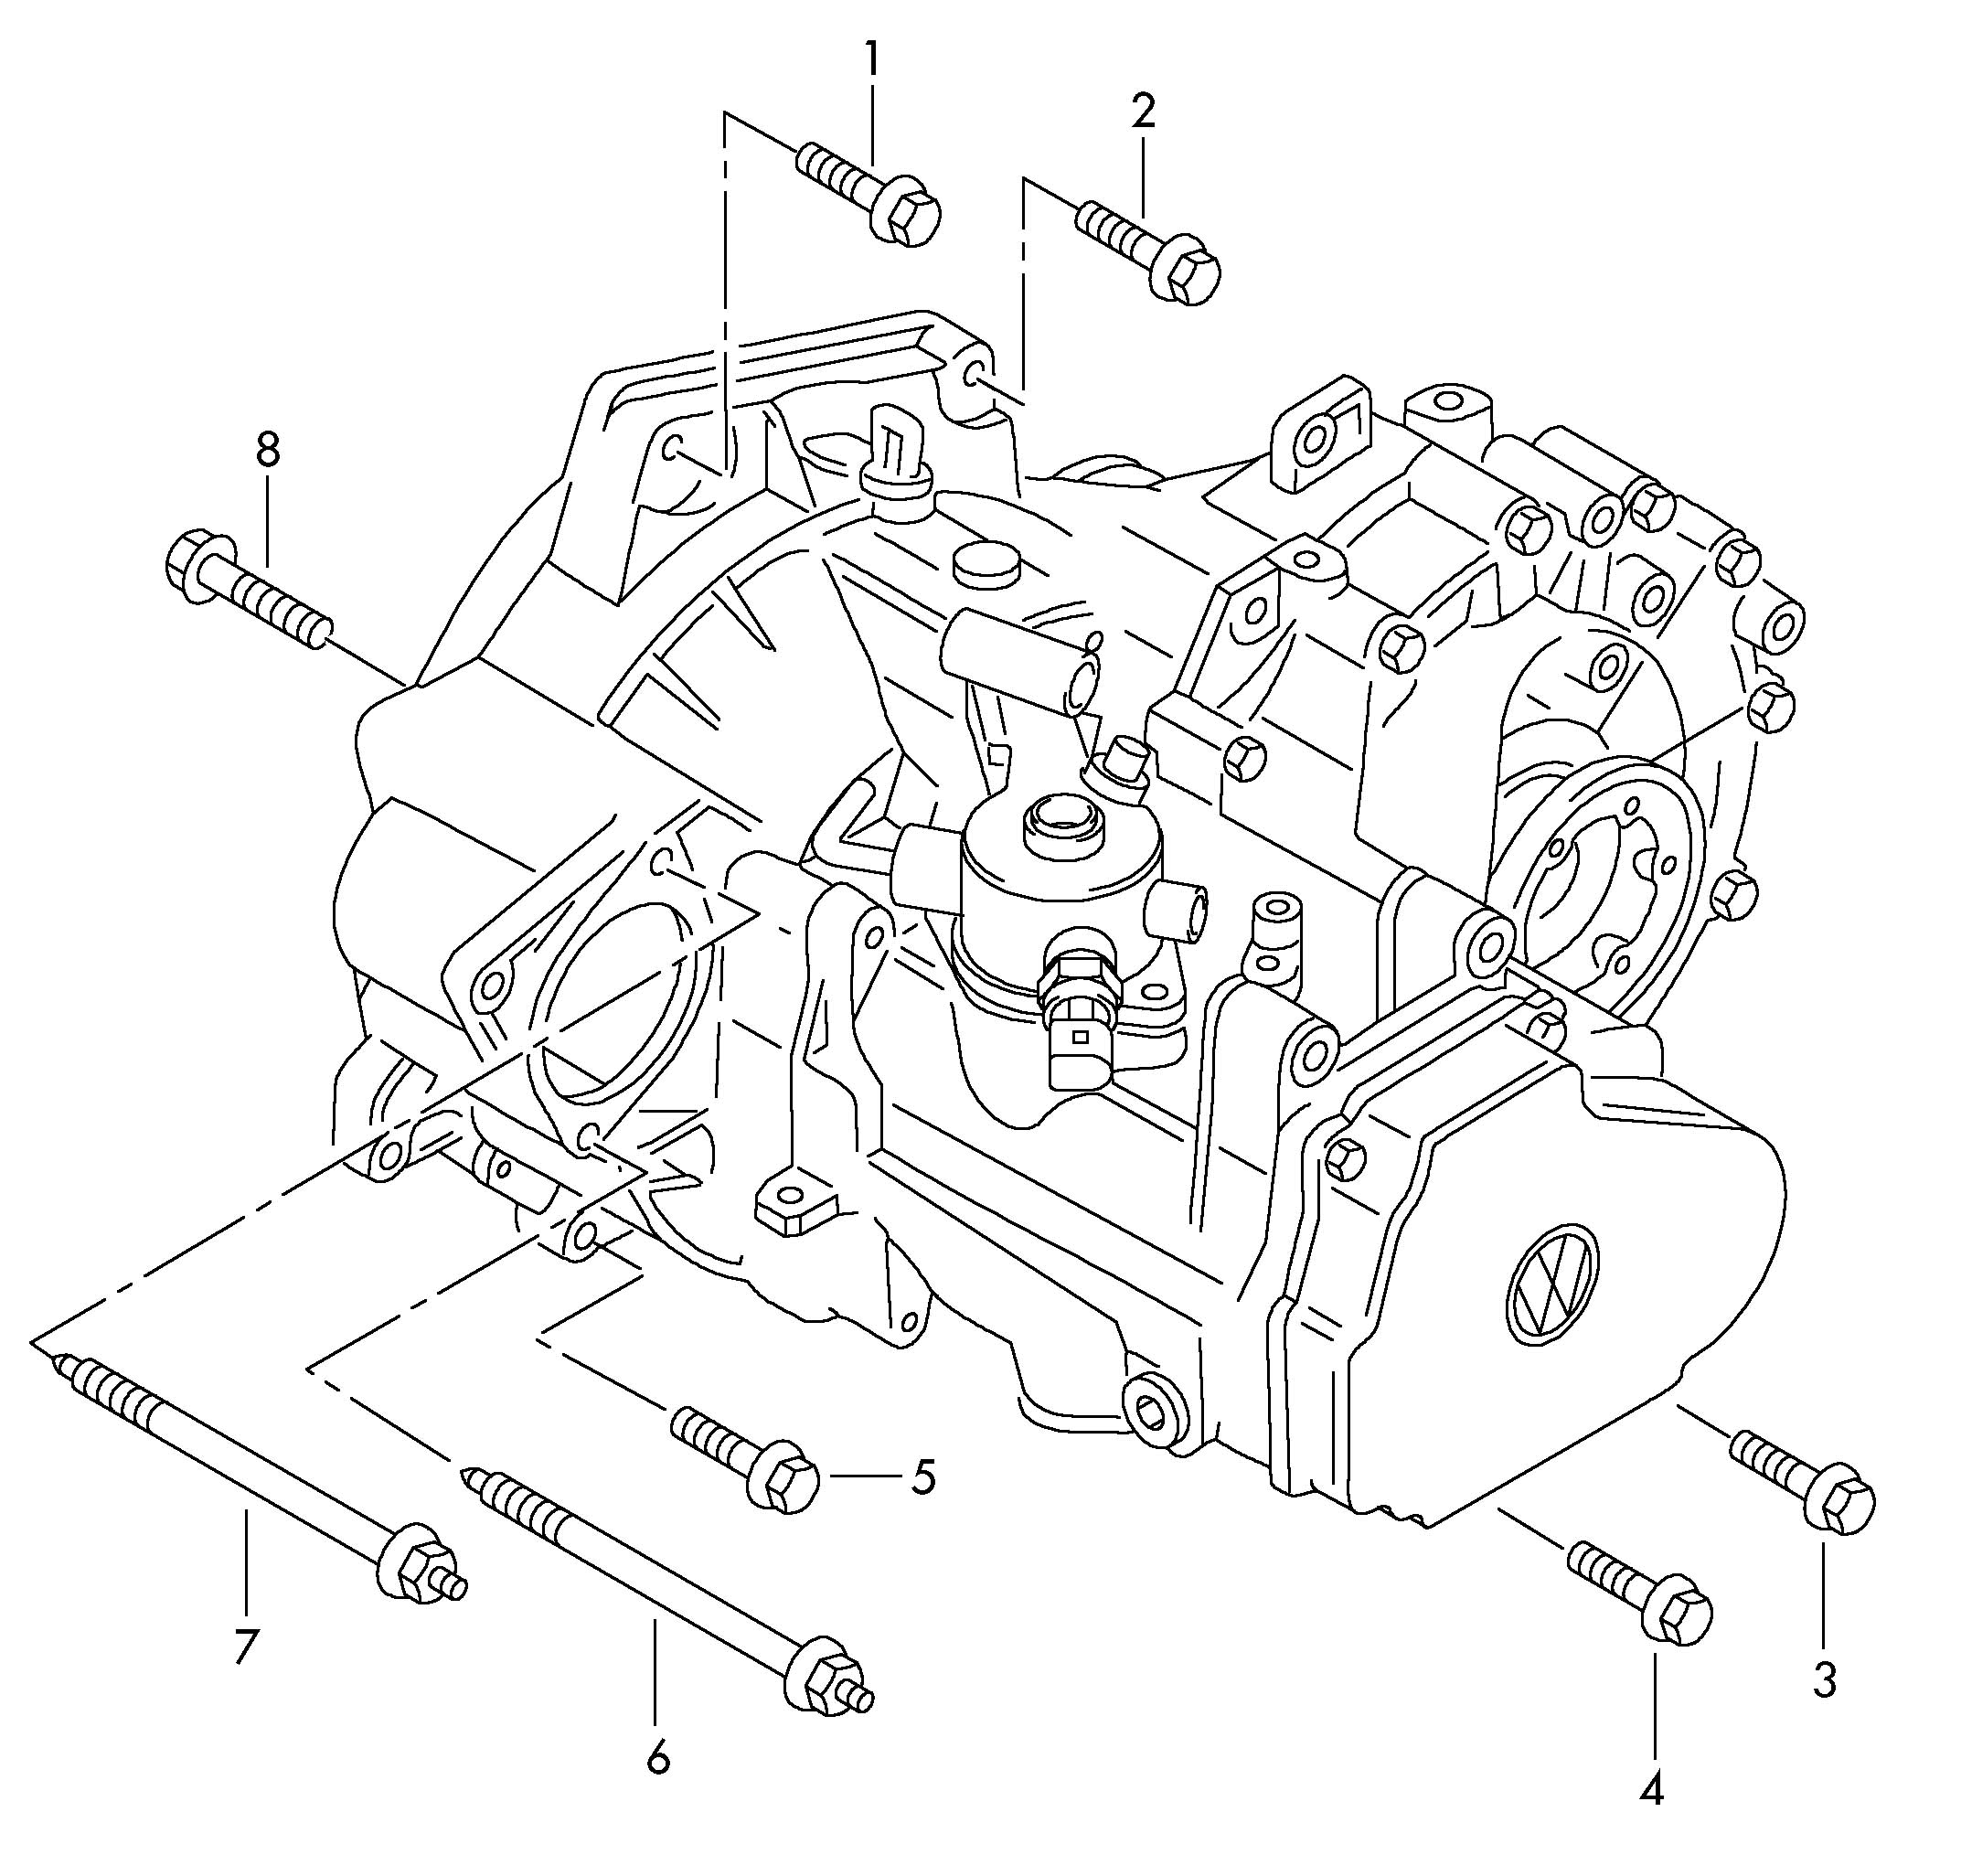 Volkswagen (VW) Jetta Mounting parts for engine and